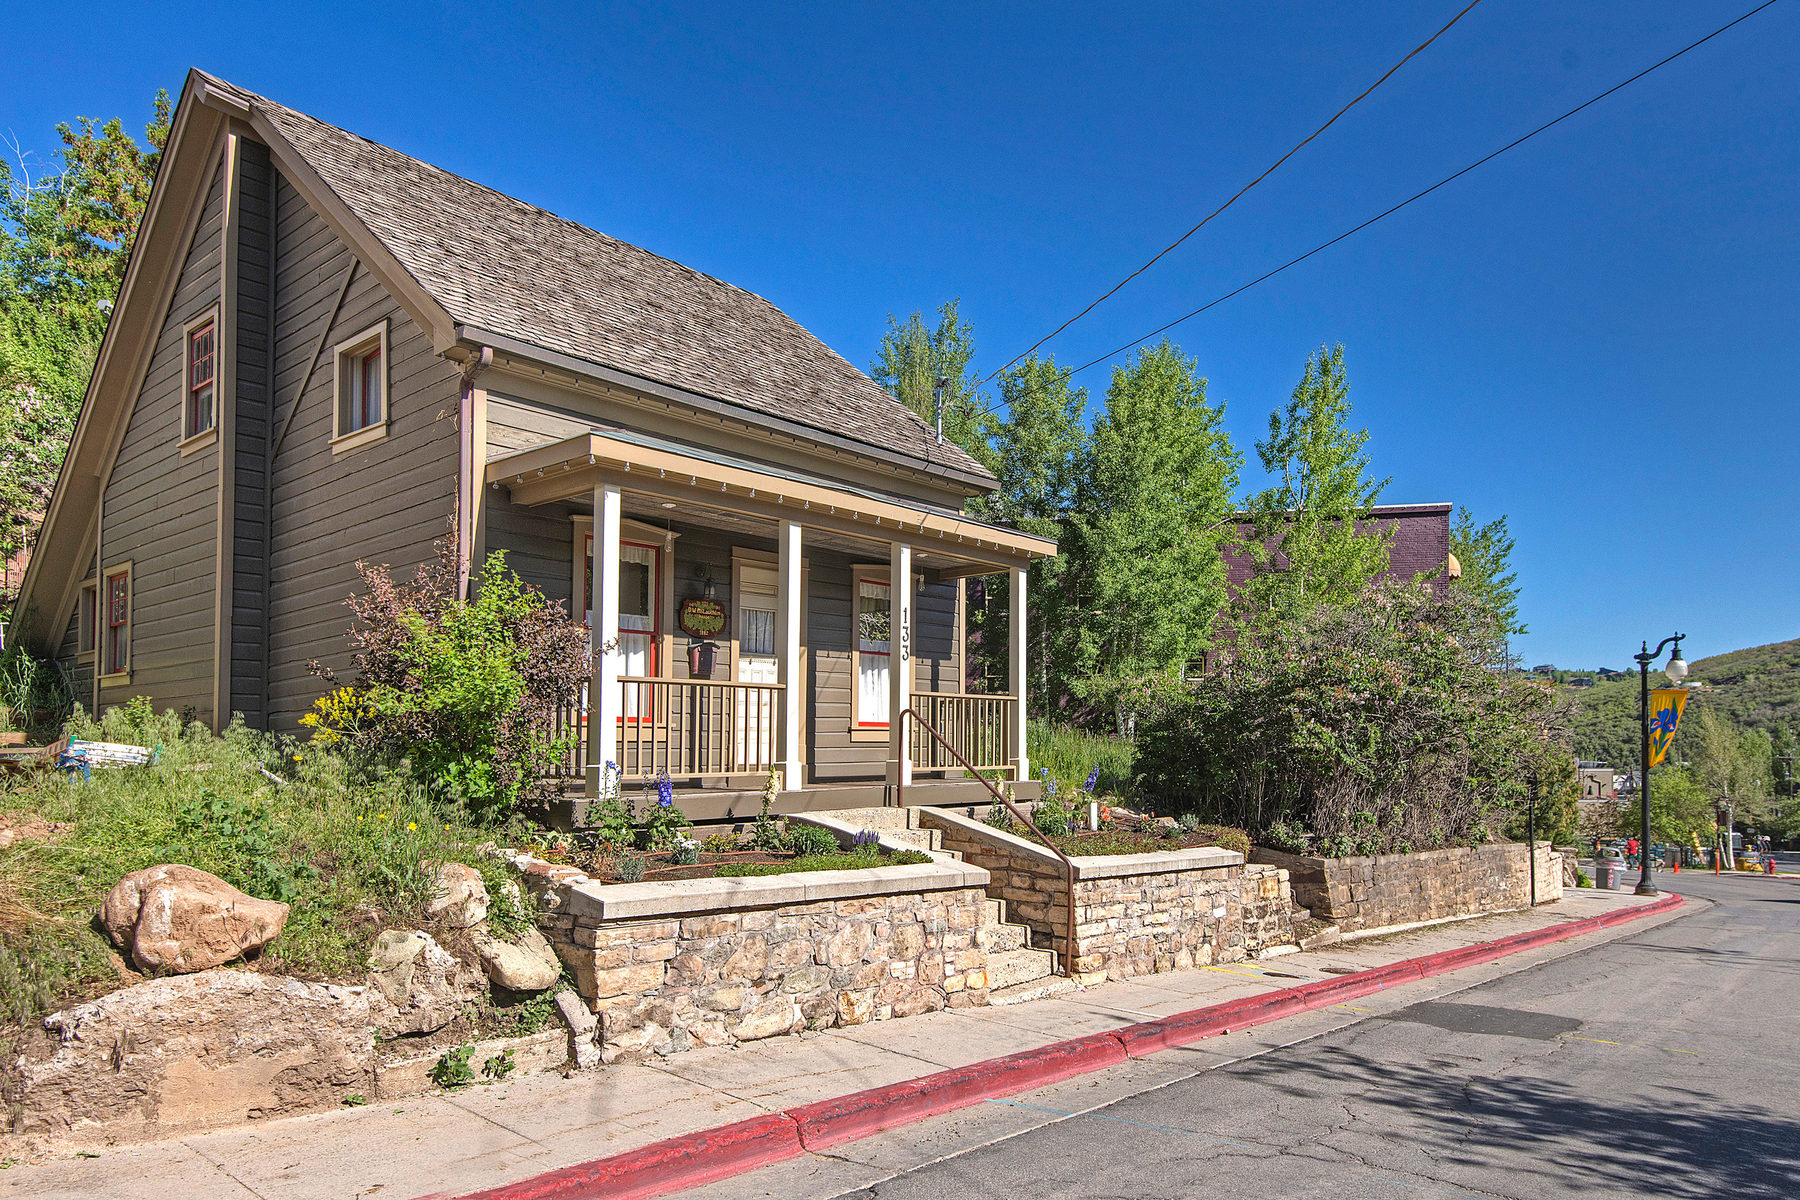 Single Family Home for Sale at Notable Historic Treasure on Main Street 133 Main Street Park City, Utah 84060 United States